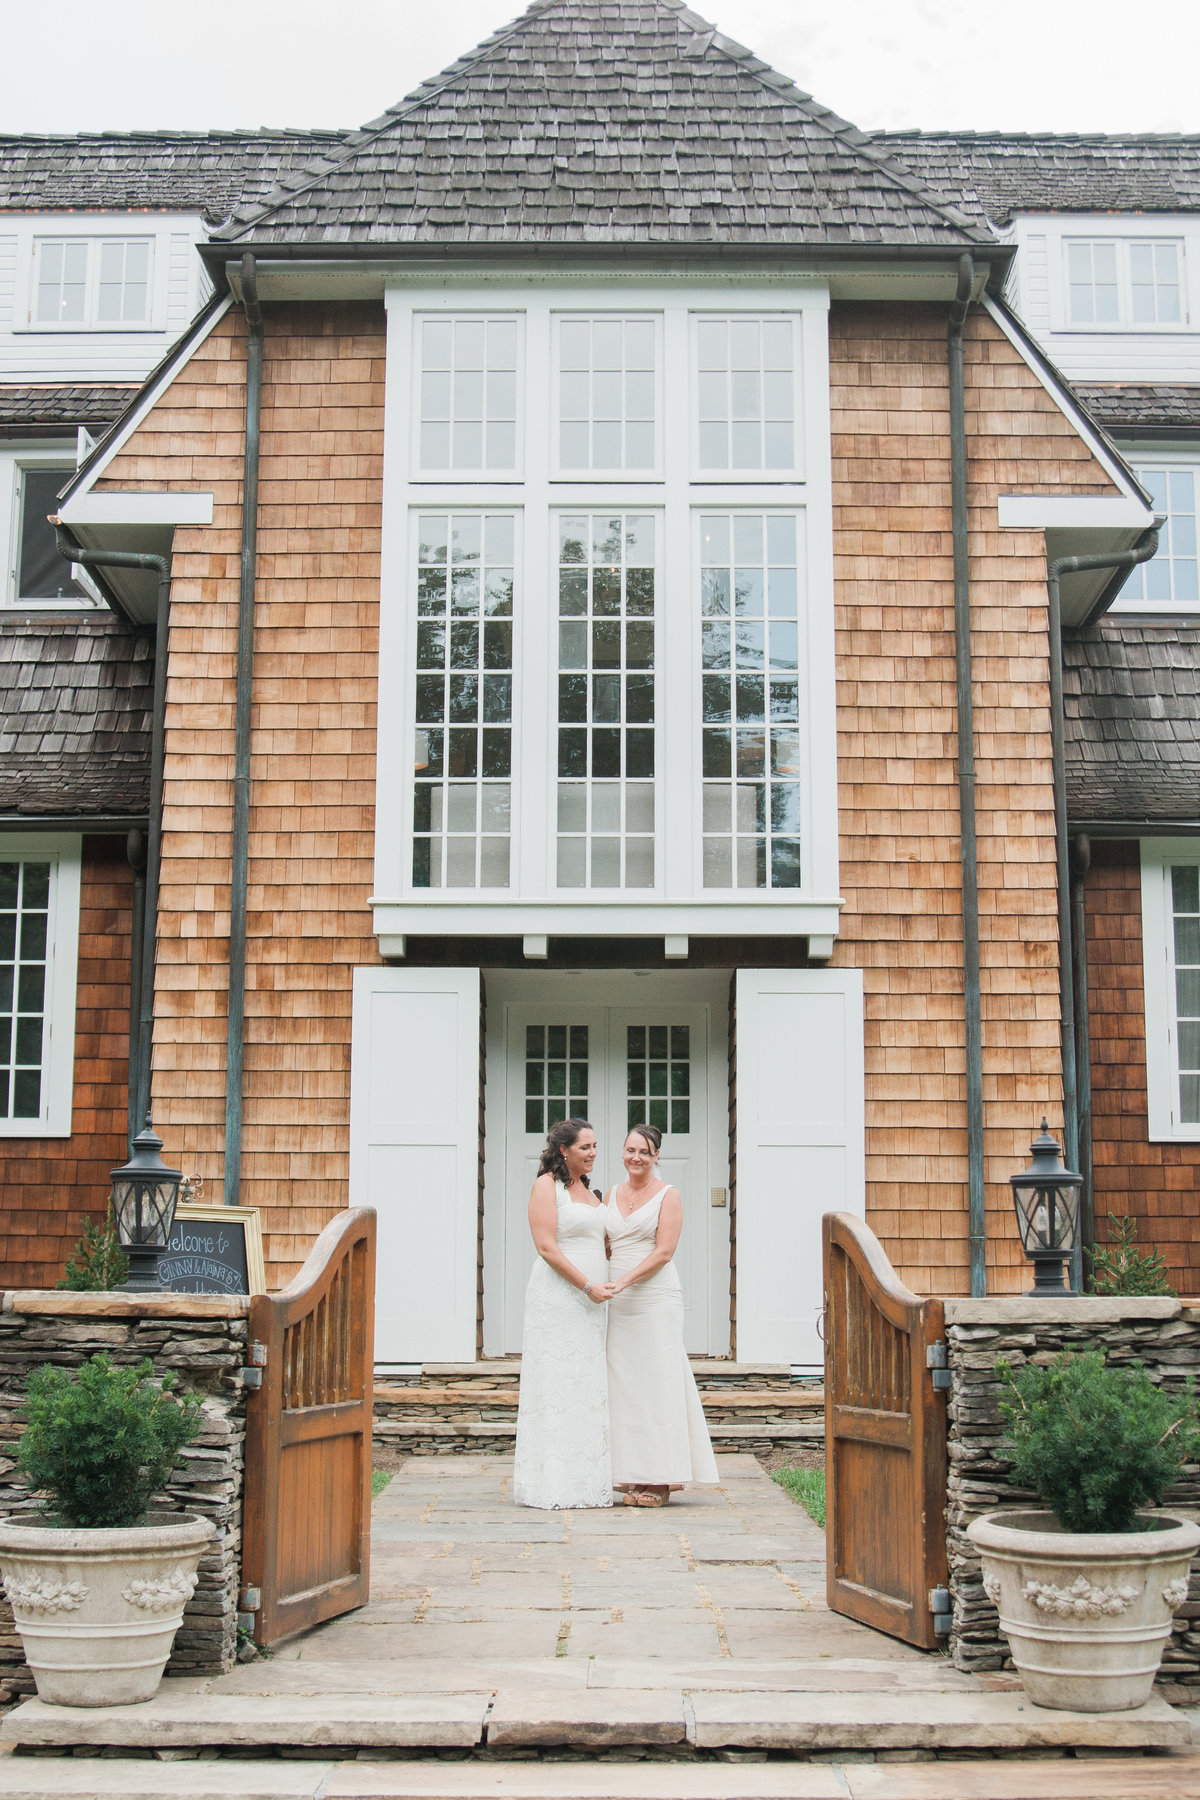 Intimate outdoor wedding photographed by Boone Wedding Photographer Wayfaring Wanderer.